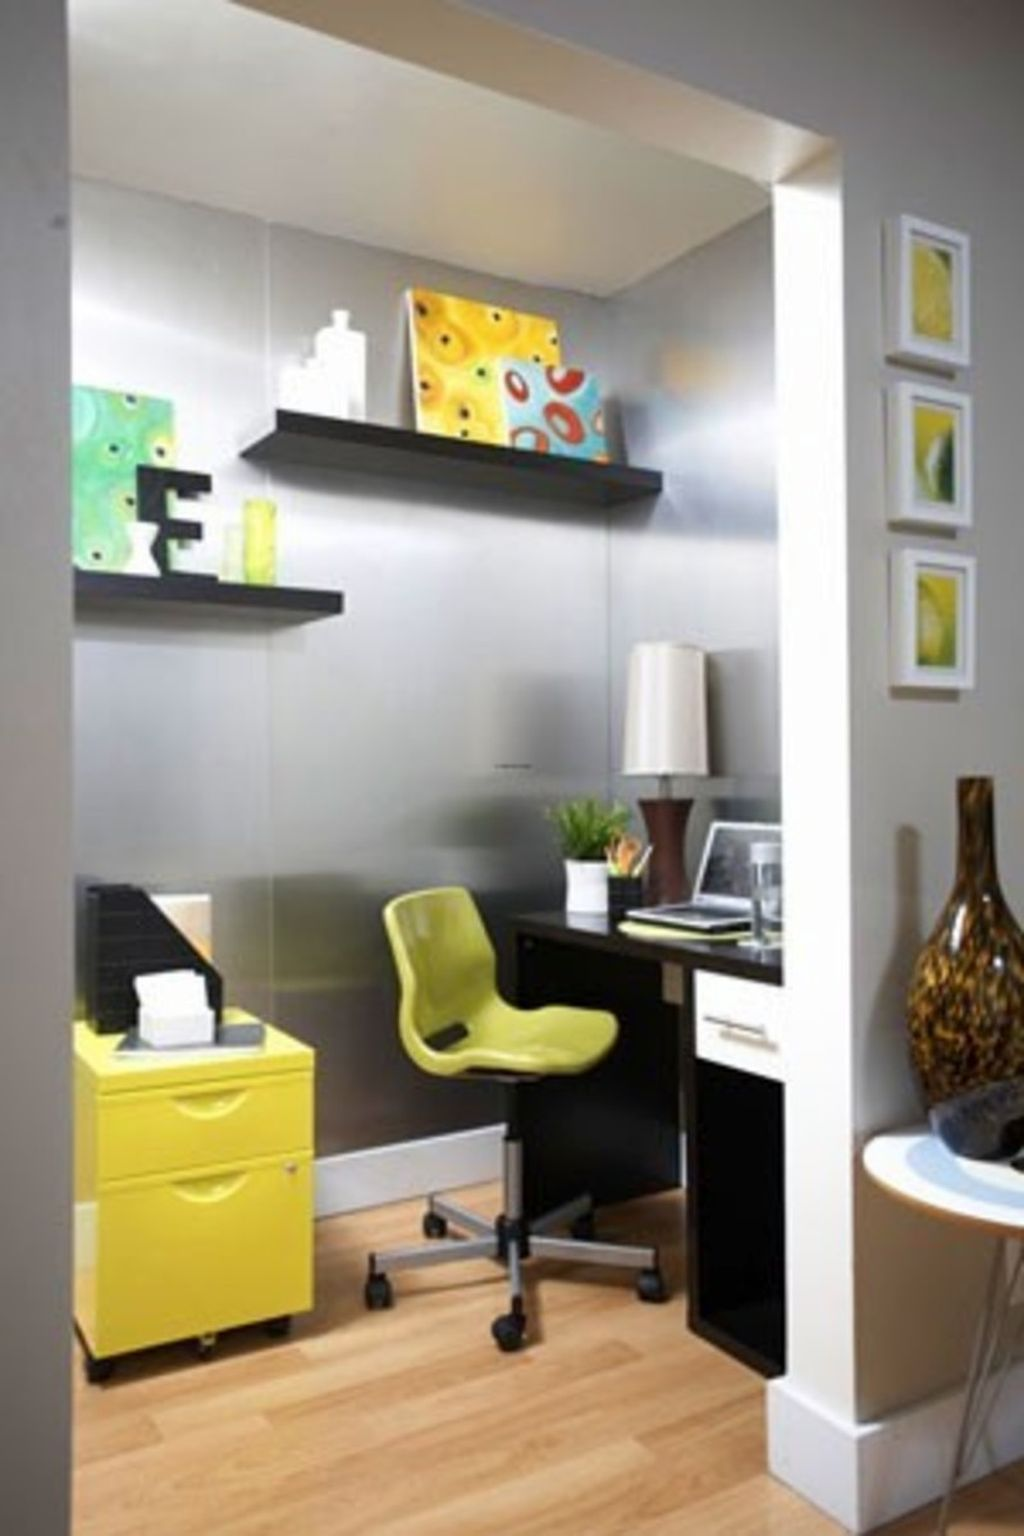 20 inspiring home office design ideas for small spaces - Small space decorating tips photos ...